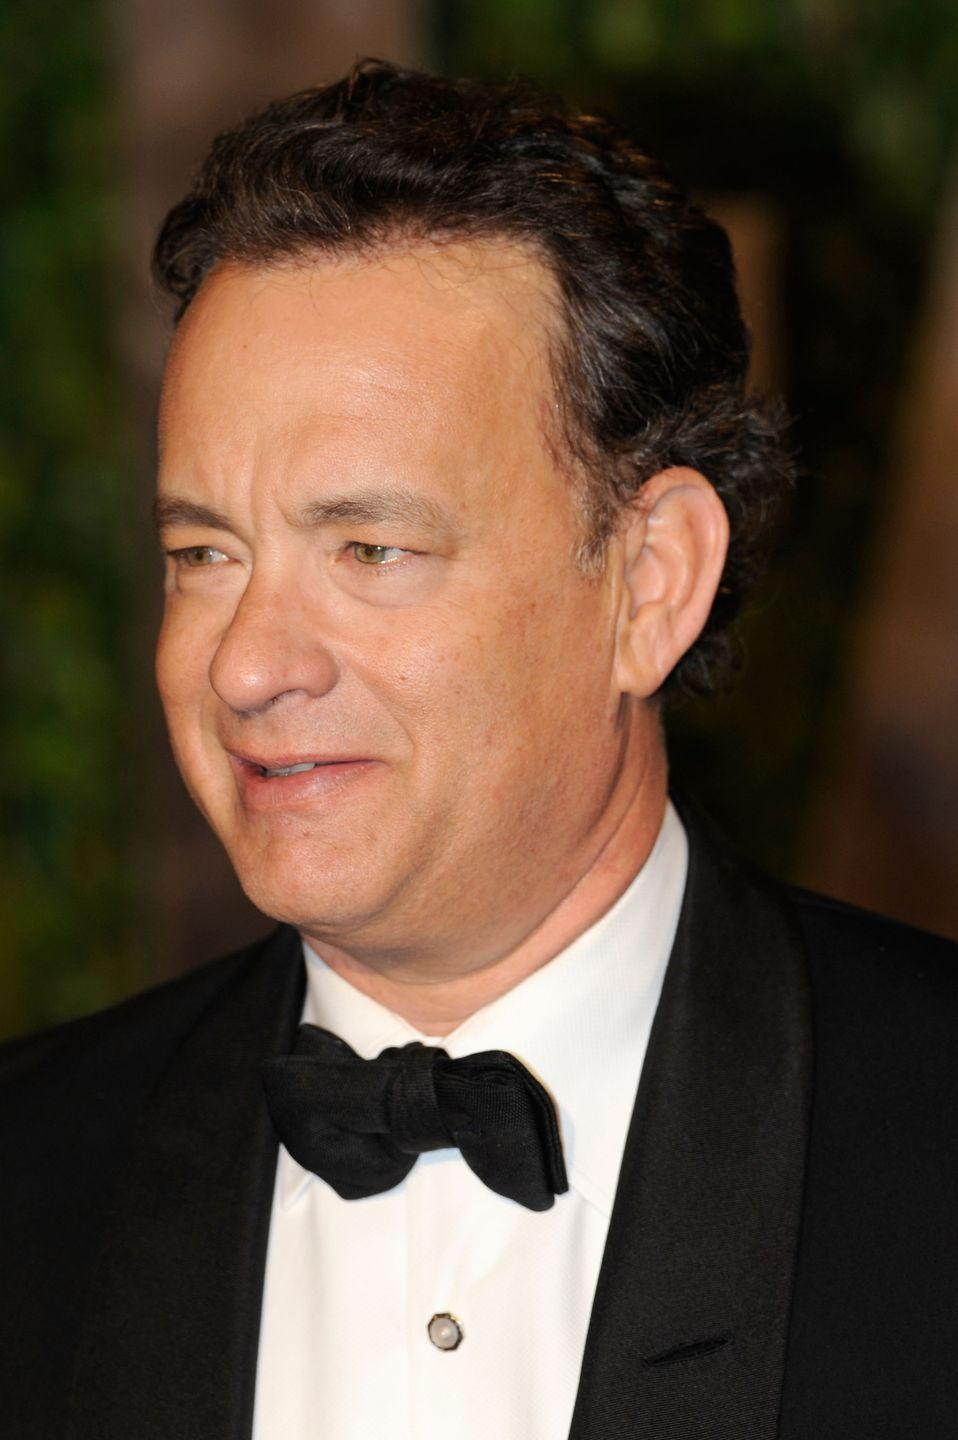 <p>Tom Hanks' natural brown curly hair is seen here as he arrives at the Vanity Fair Oscar Party in 2010. </p>